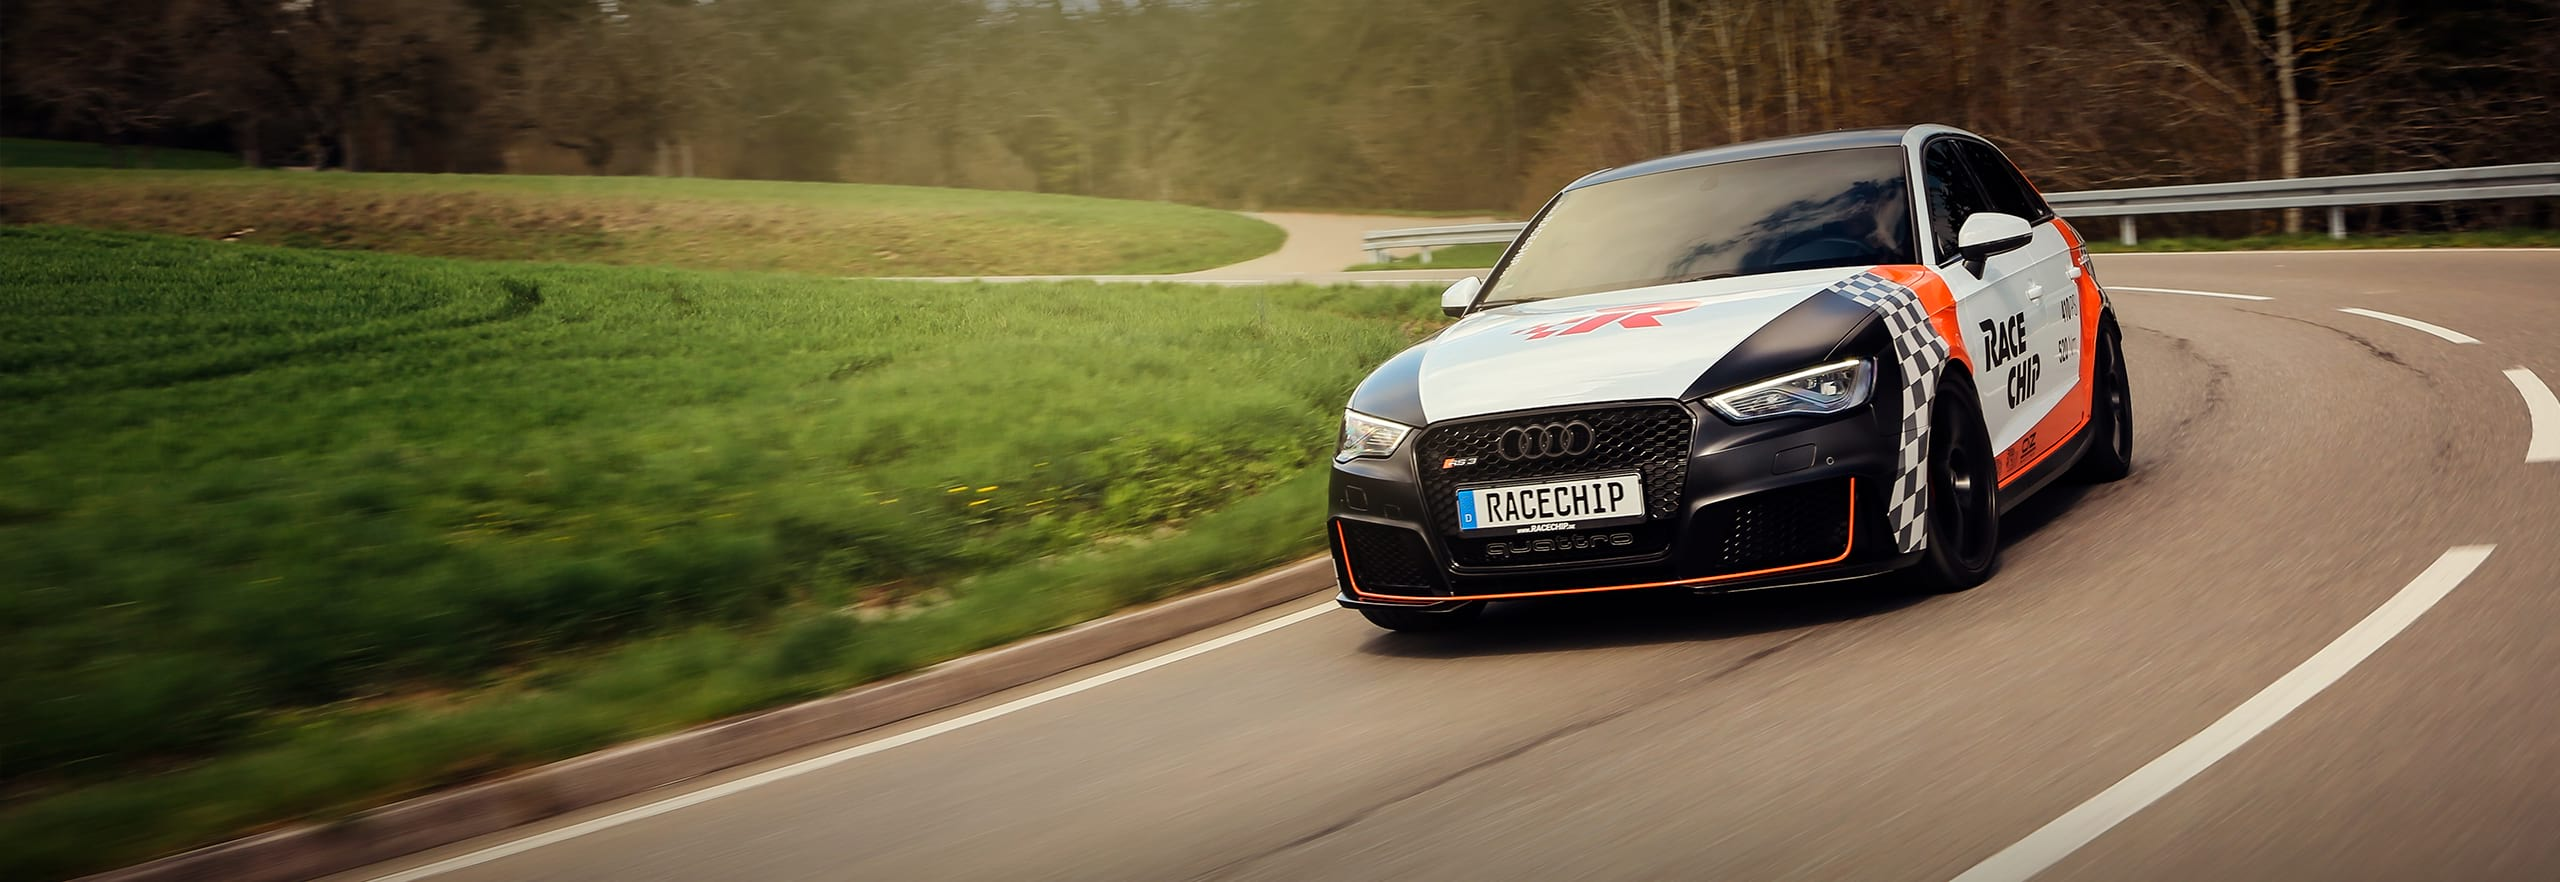 Chiptuning for Audi - Engine Tuning by RaceChip